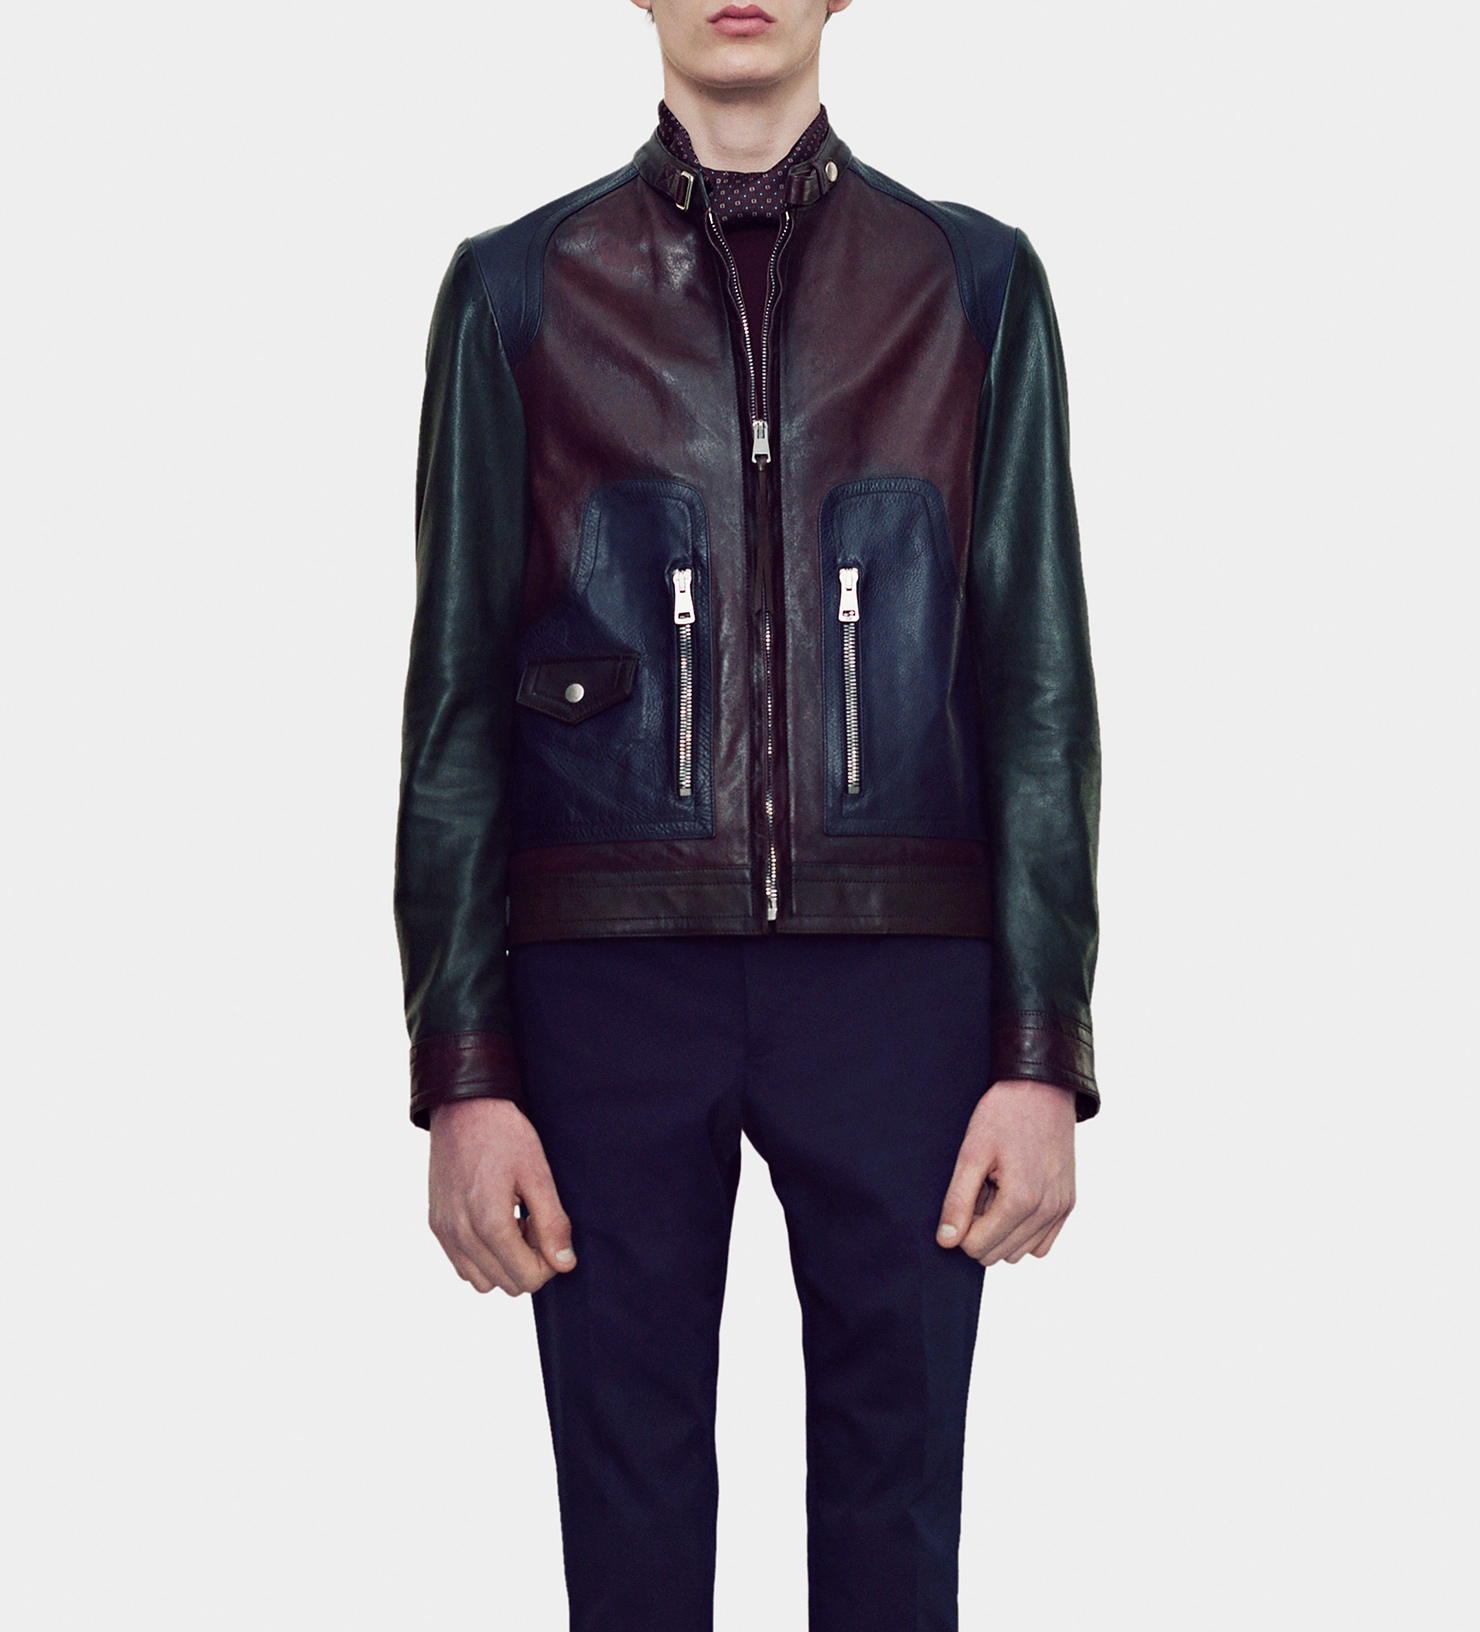 Lyst - Gucci Mixed Leather Biker Jacket for Men